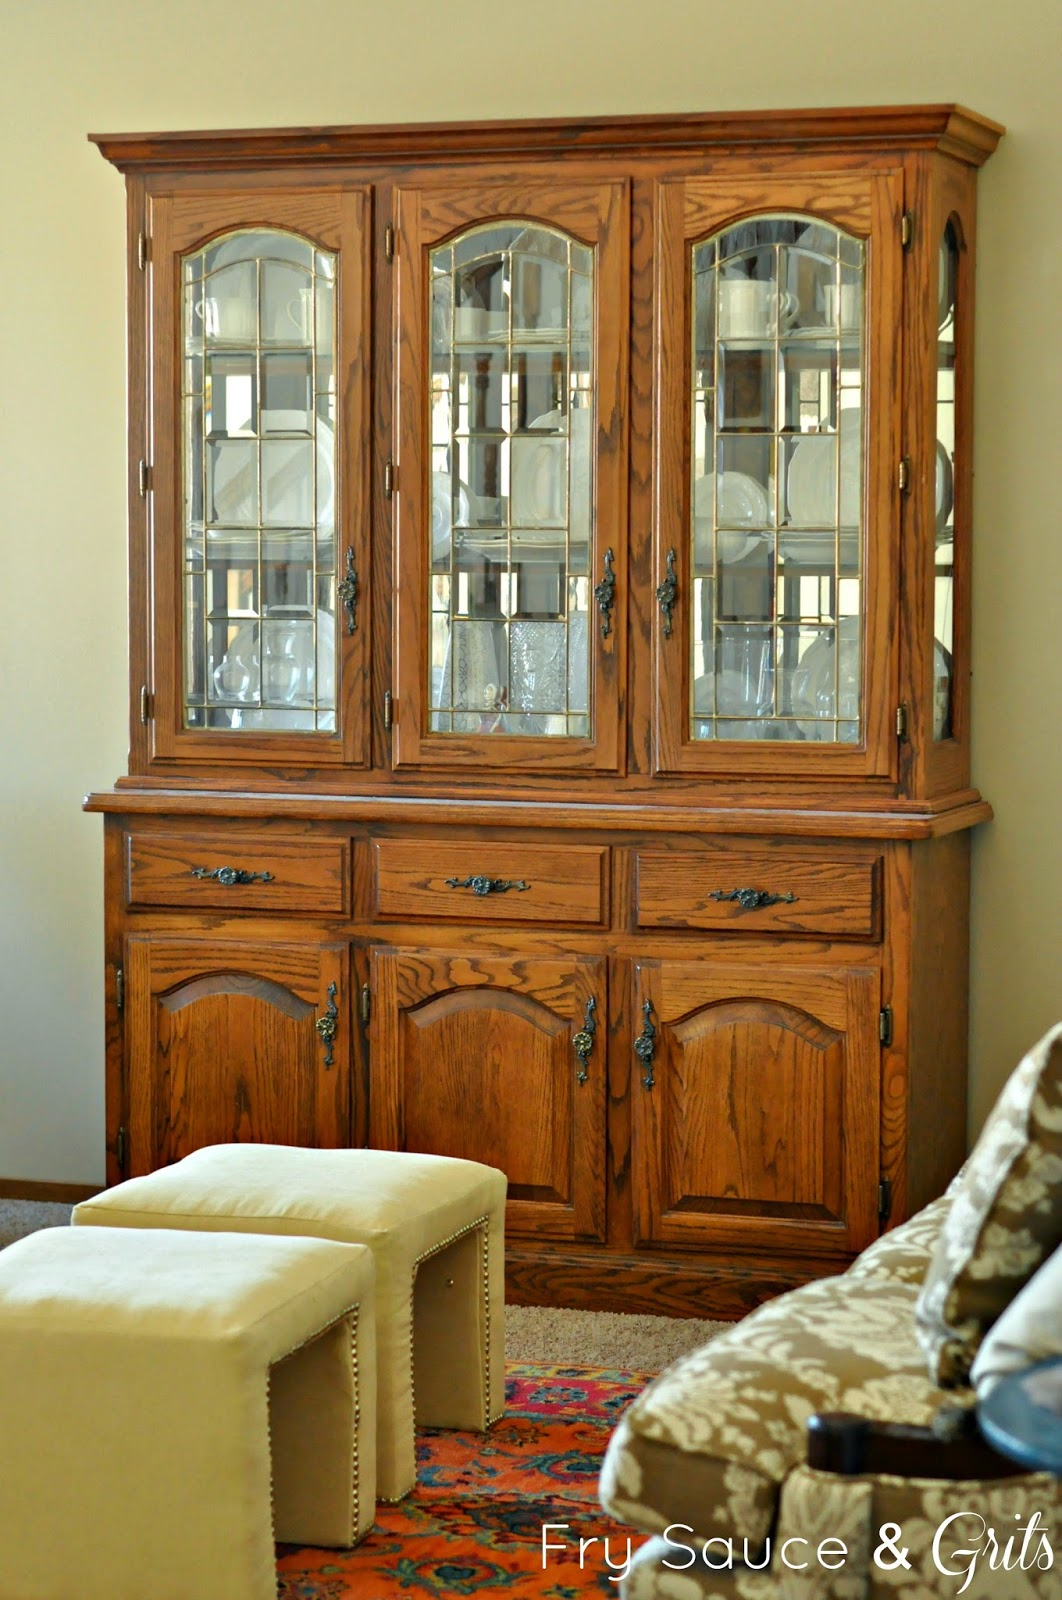 Oak China Cabinet Redo from Fry Sauce and Grits